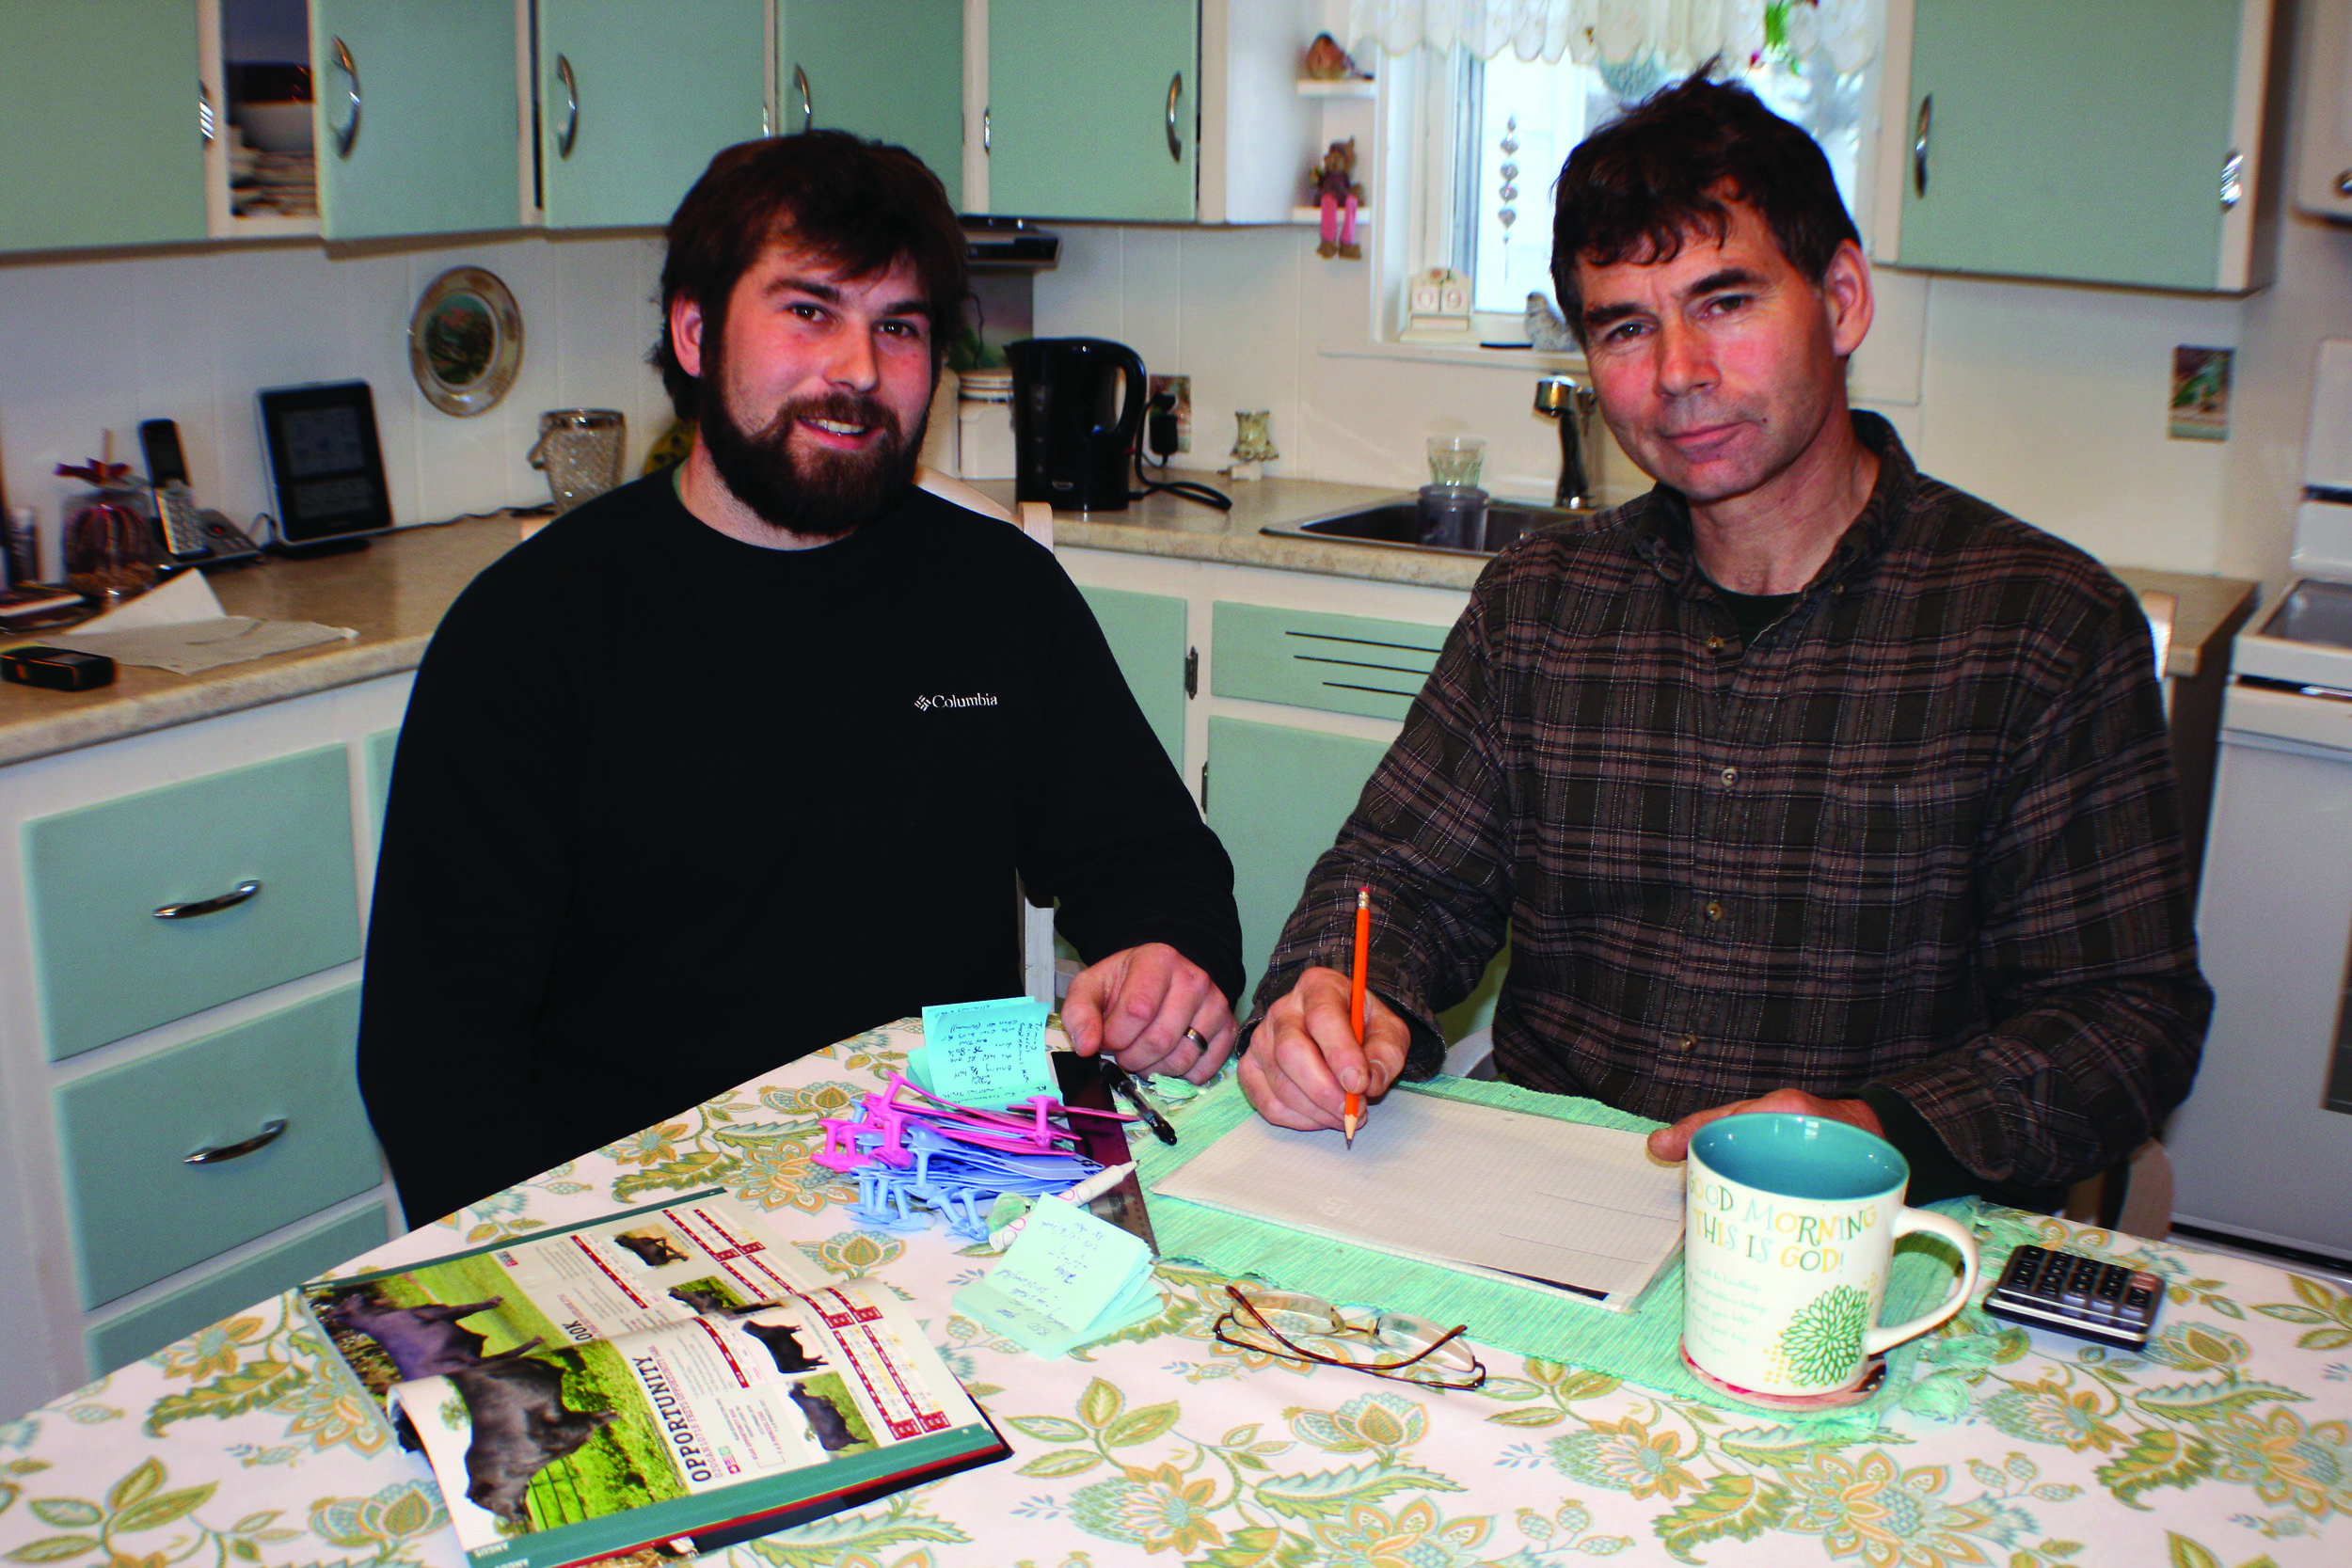 Nathan Murray, left, and his father Robert own and operate Tantramar Acres Farm. Their work includes plenty of planning sessions at the kitchen table. (Joan LeBlanc photo)